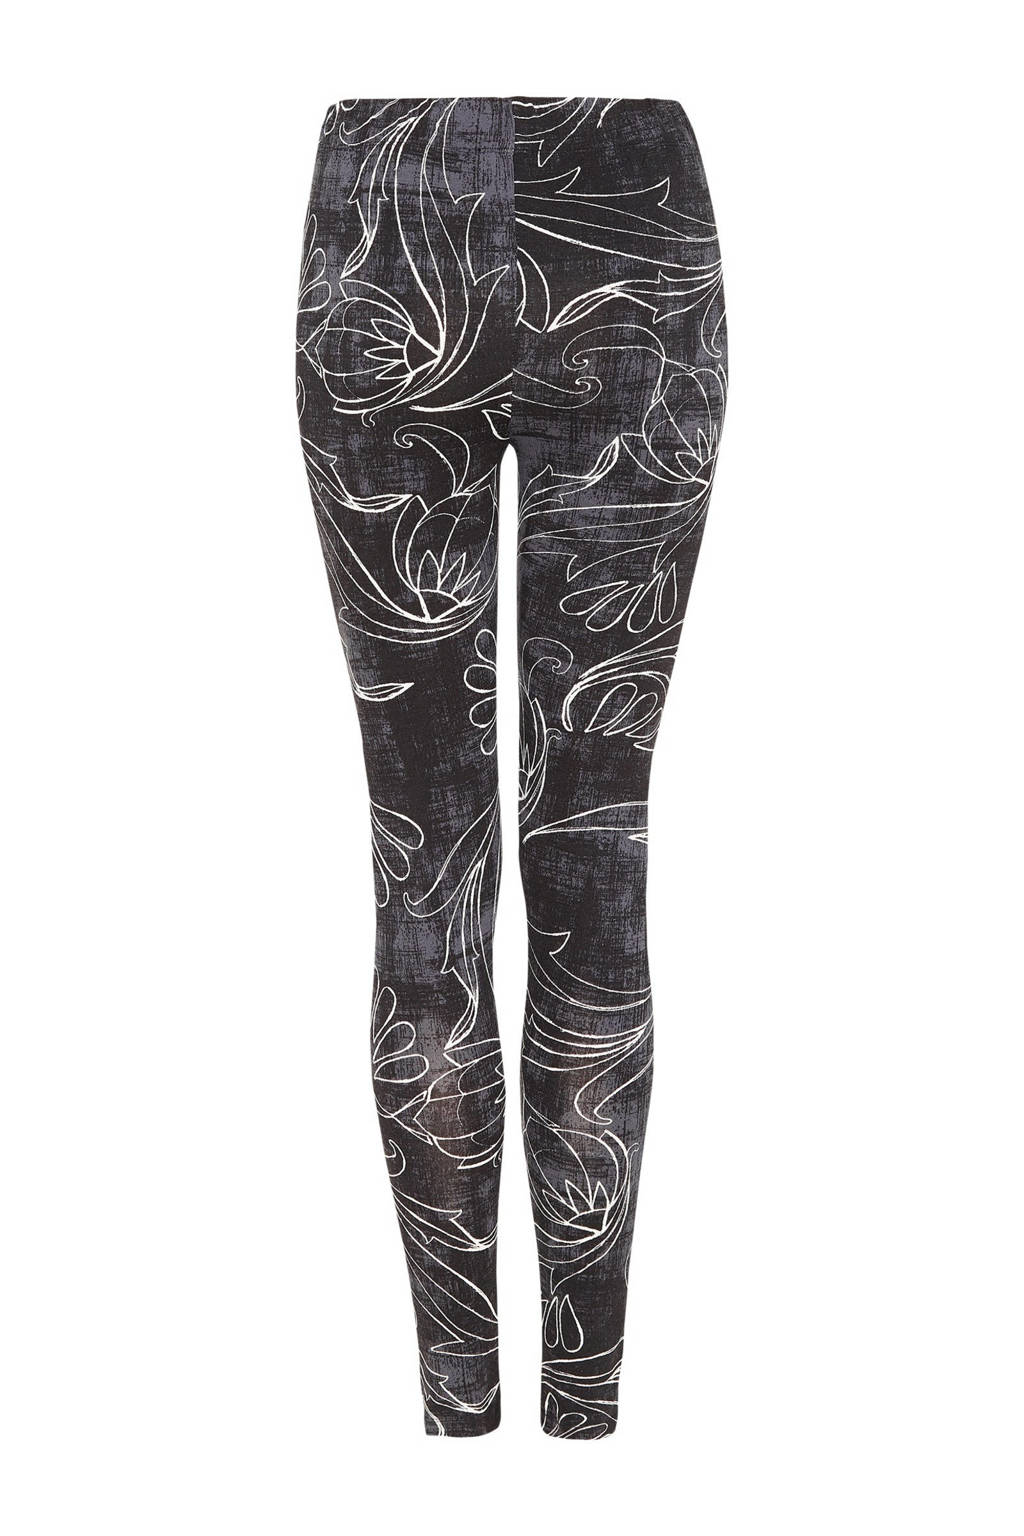 Didi legging met all over print zwart, Zwart